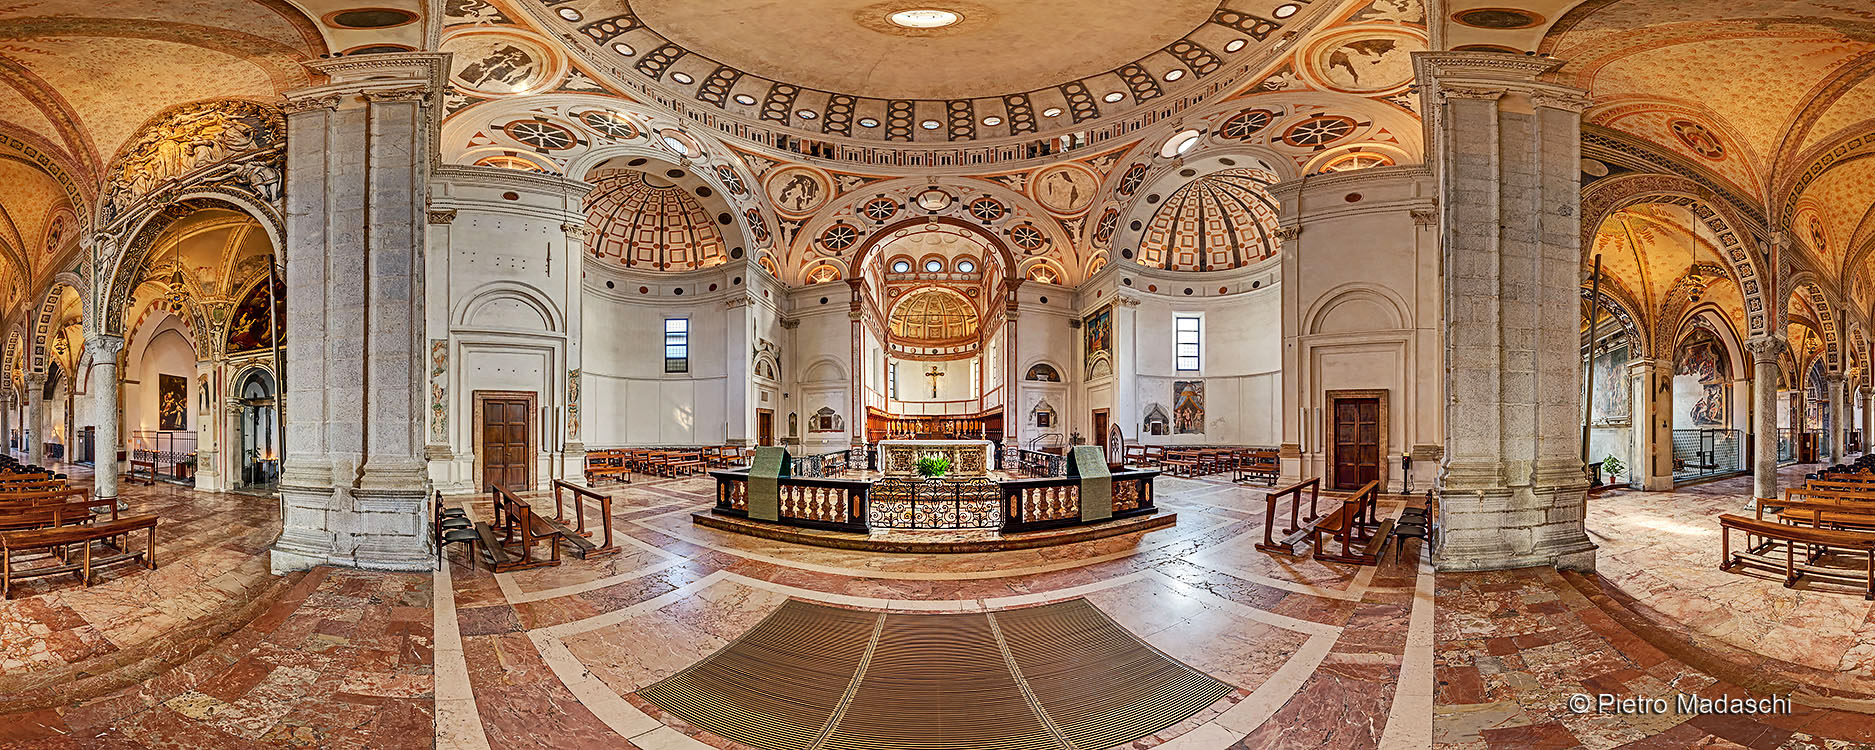 Santa Maria delle Grazie: general view with the beautiful cupola